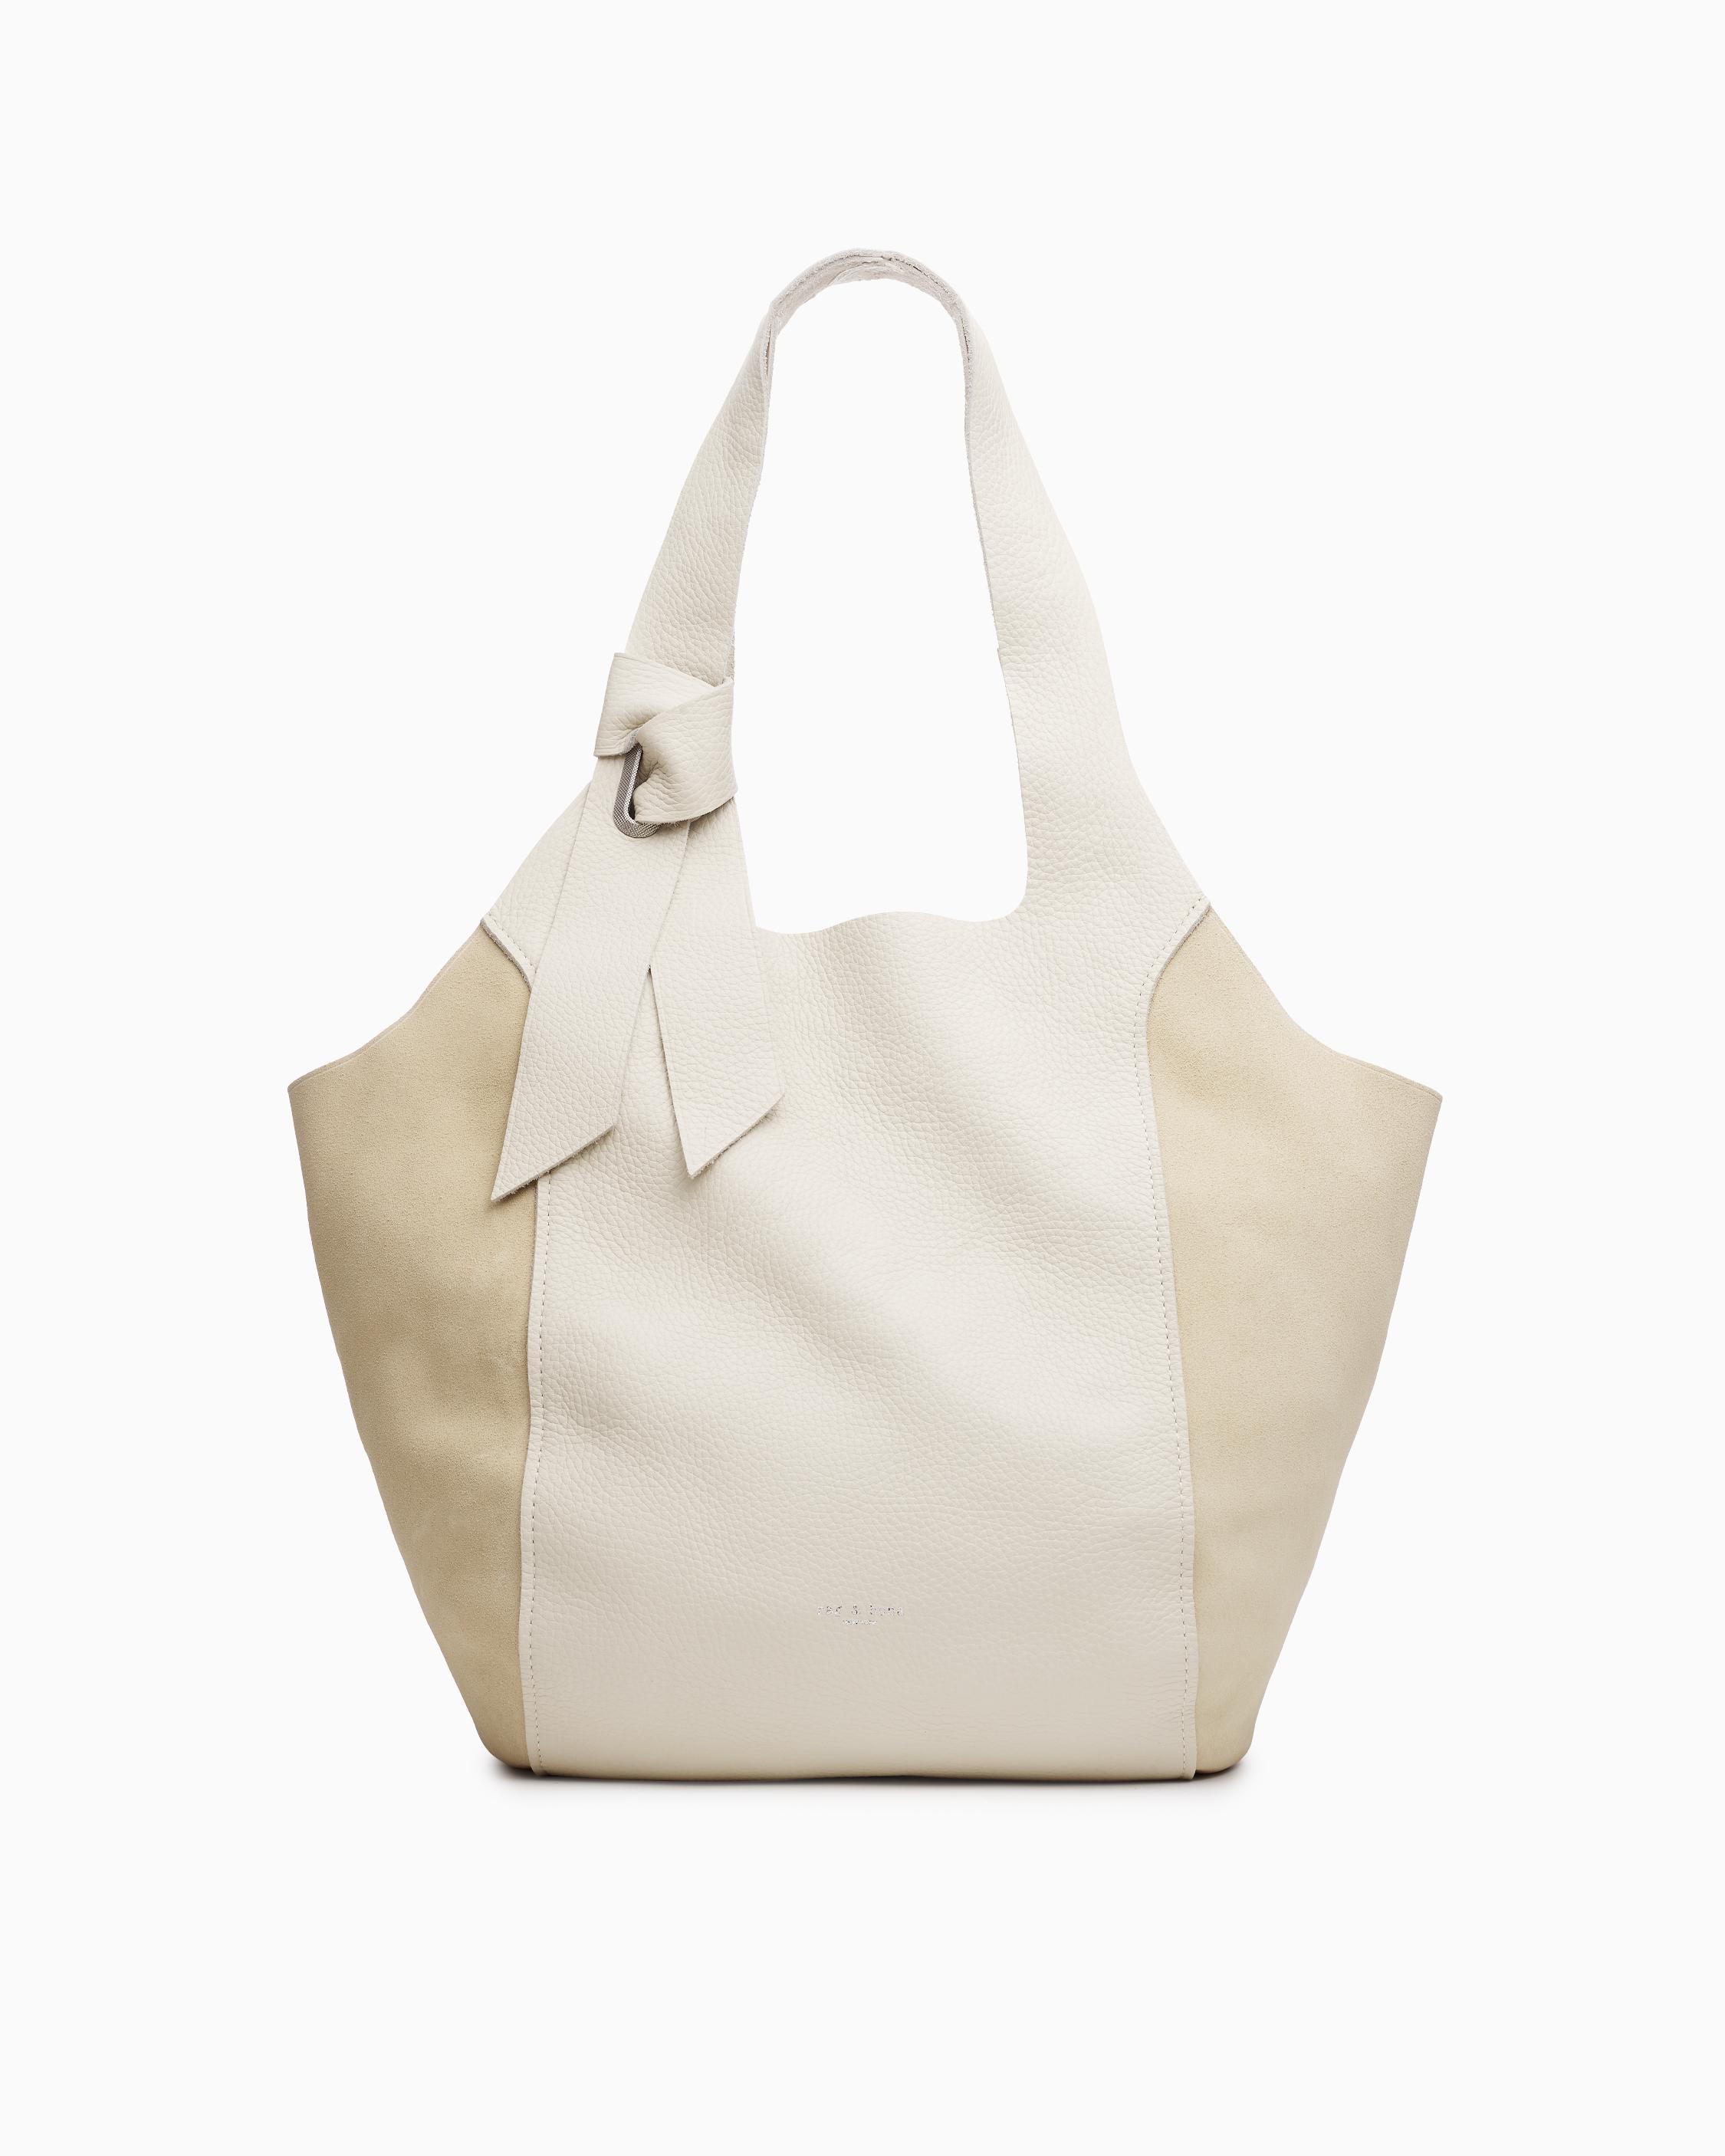 Grand shopper - pebbled leather